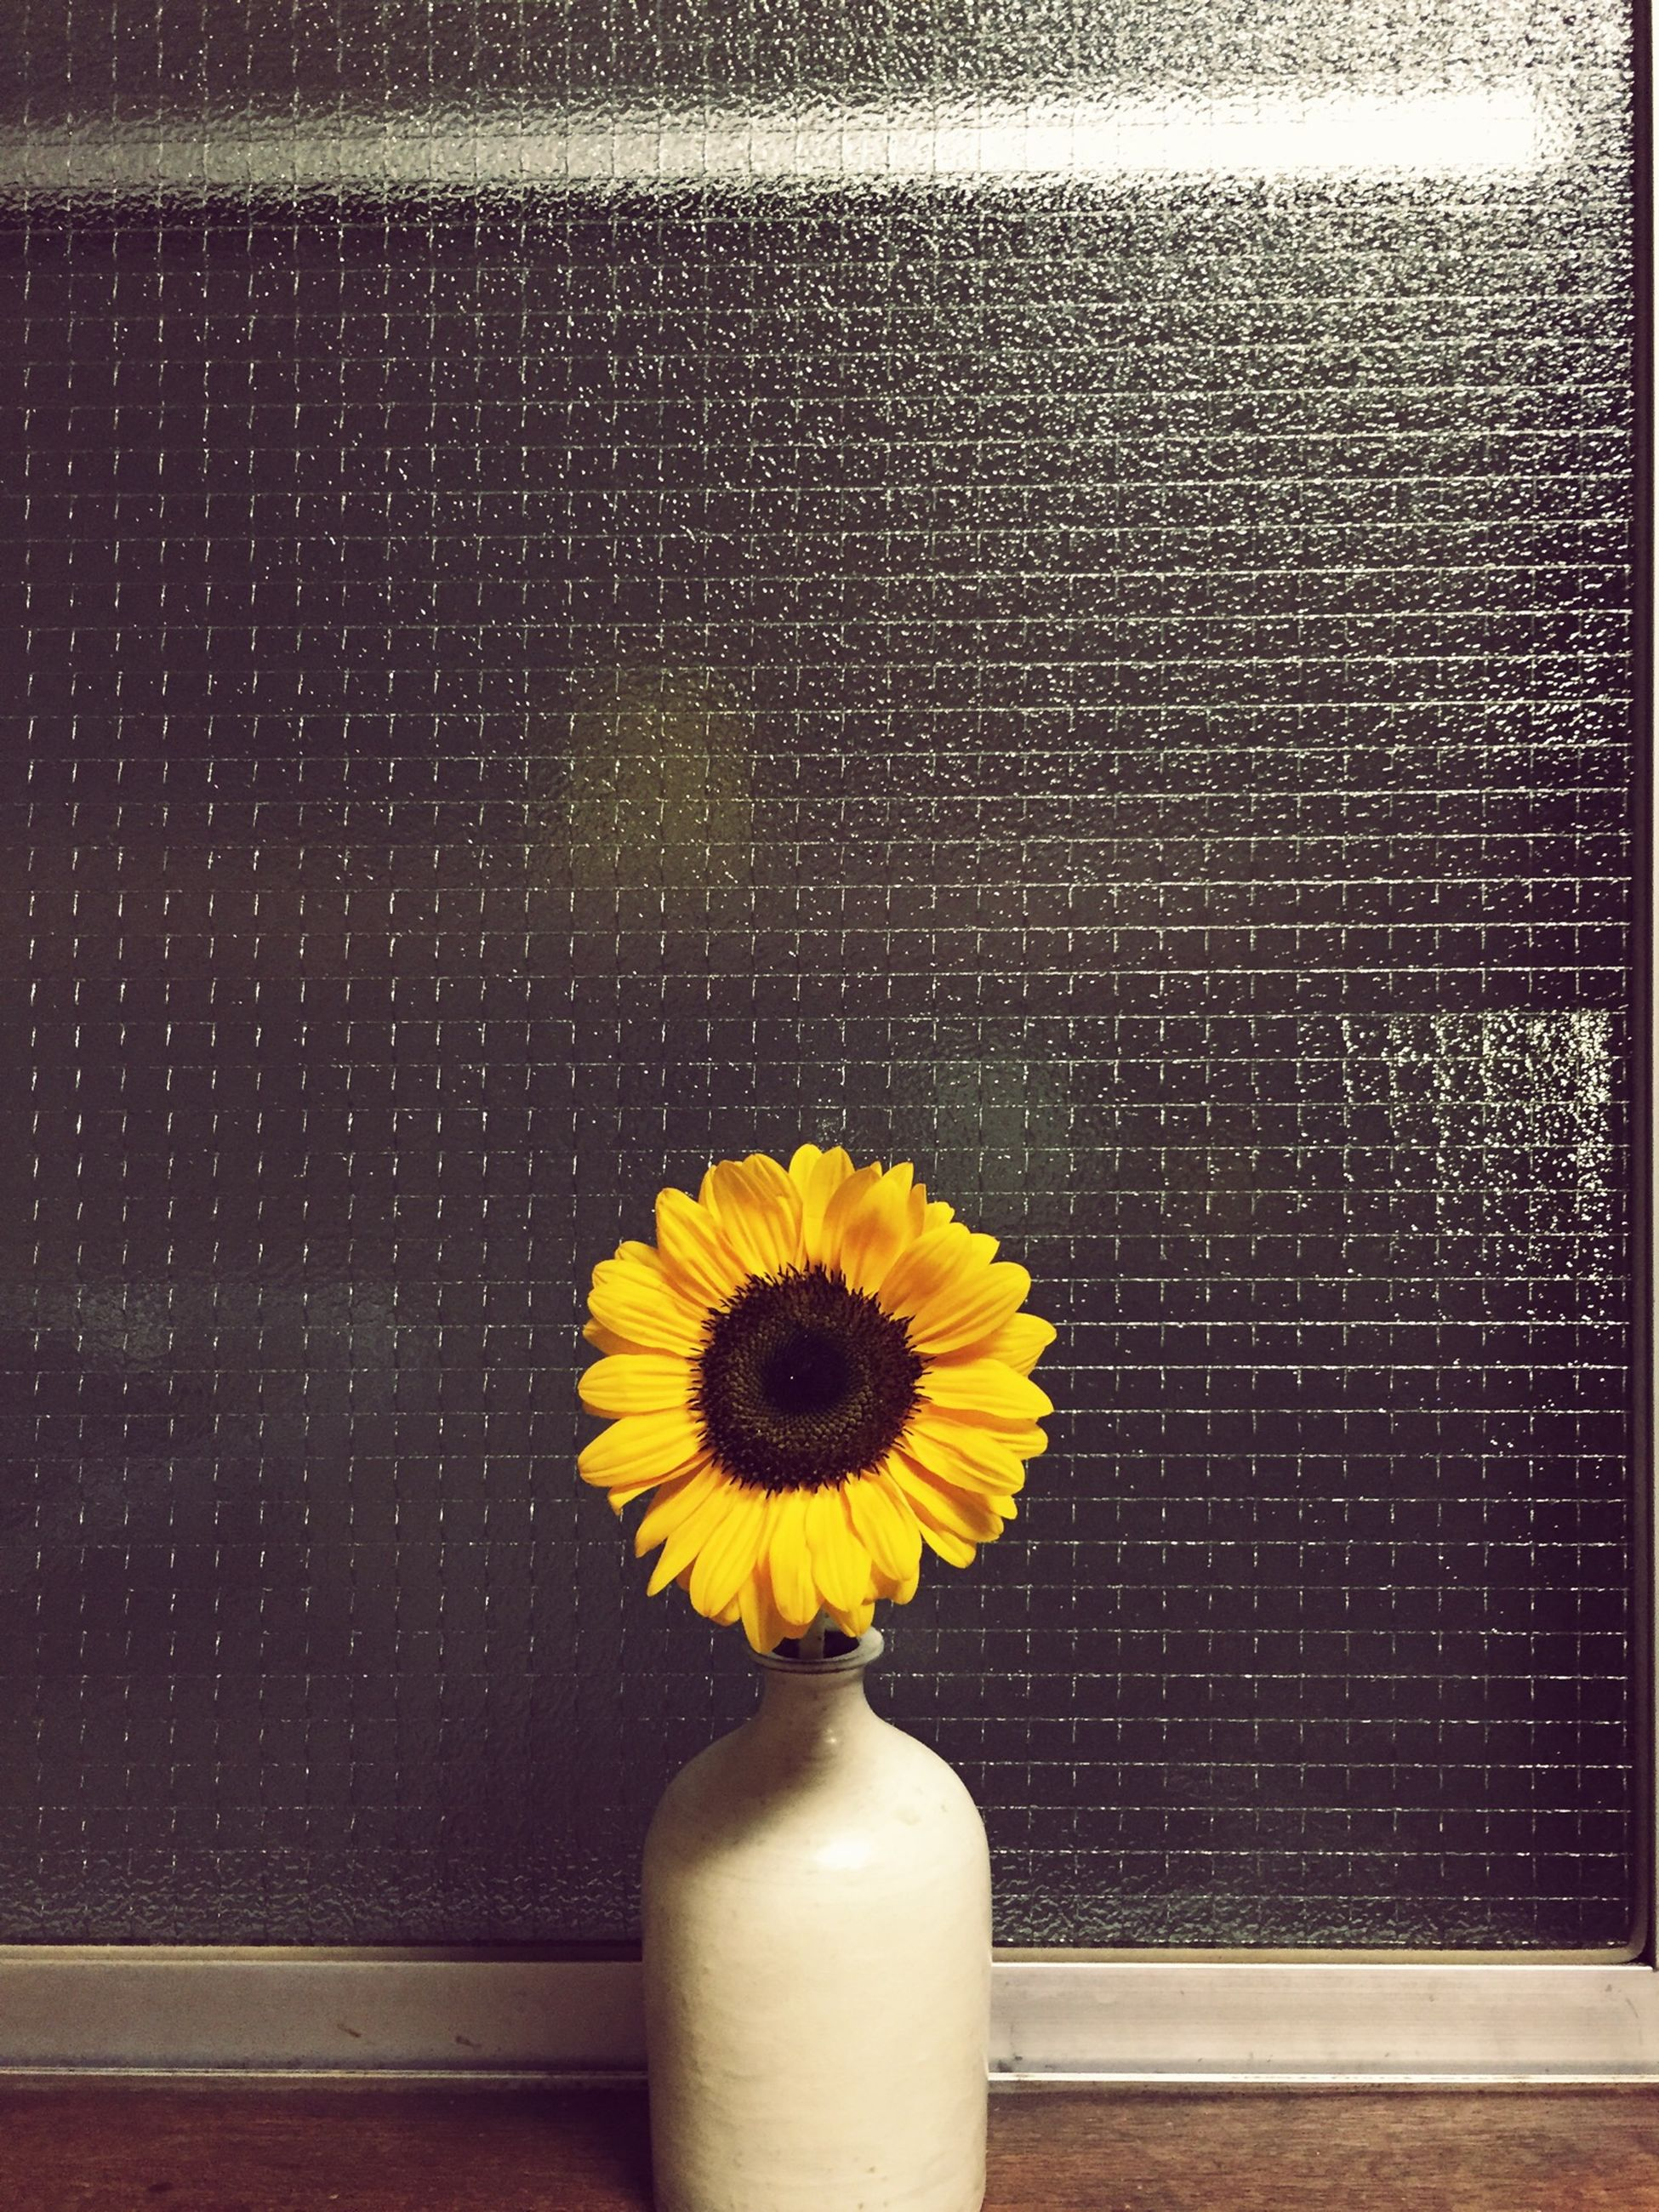 flower, yellow, fragility, freshness, flower head, petal, close-up, single flower, plant, growth, nature, blooming, indoors, in bloom, beauty in nature, wall - building feature, potted plant, daisy, no people